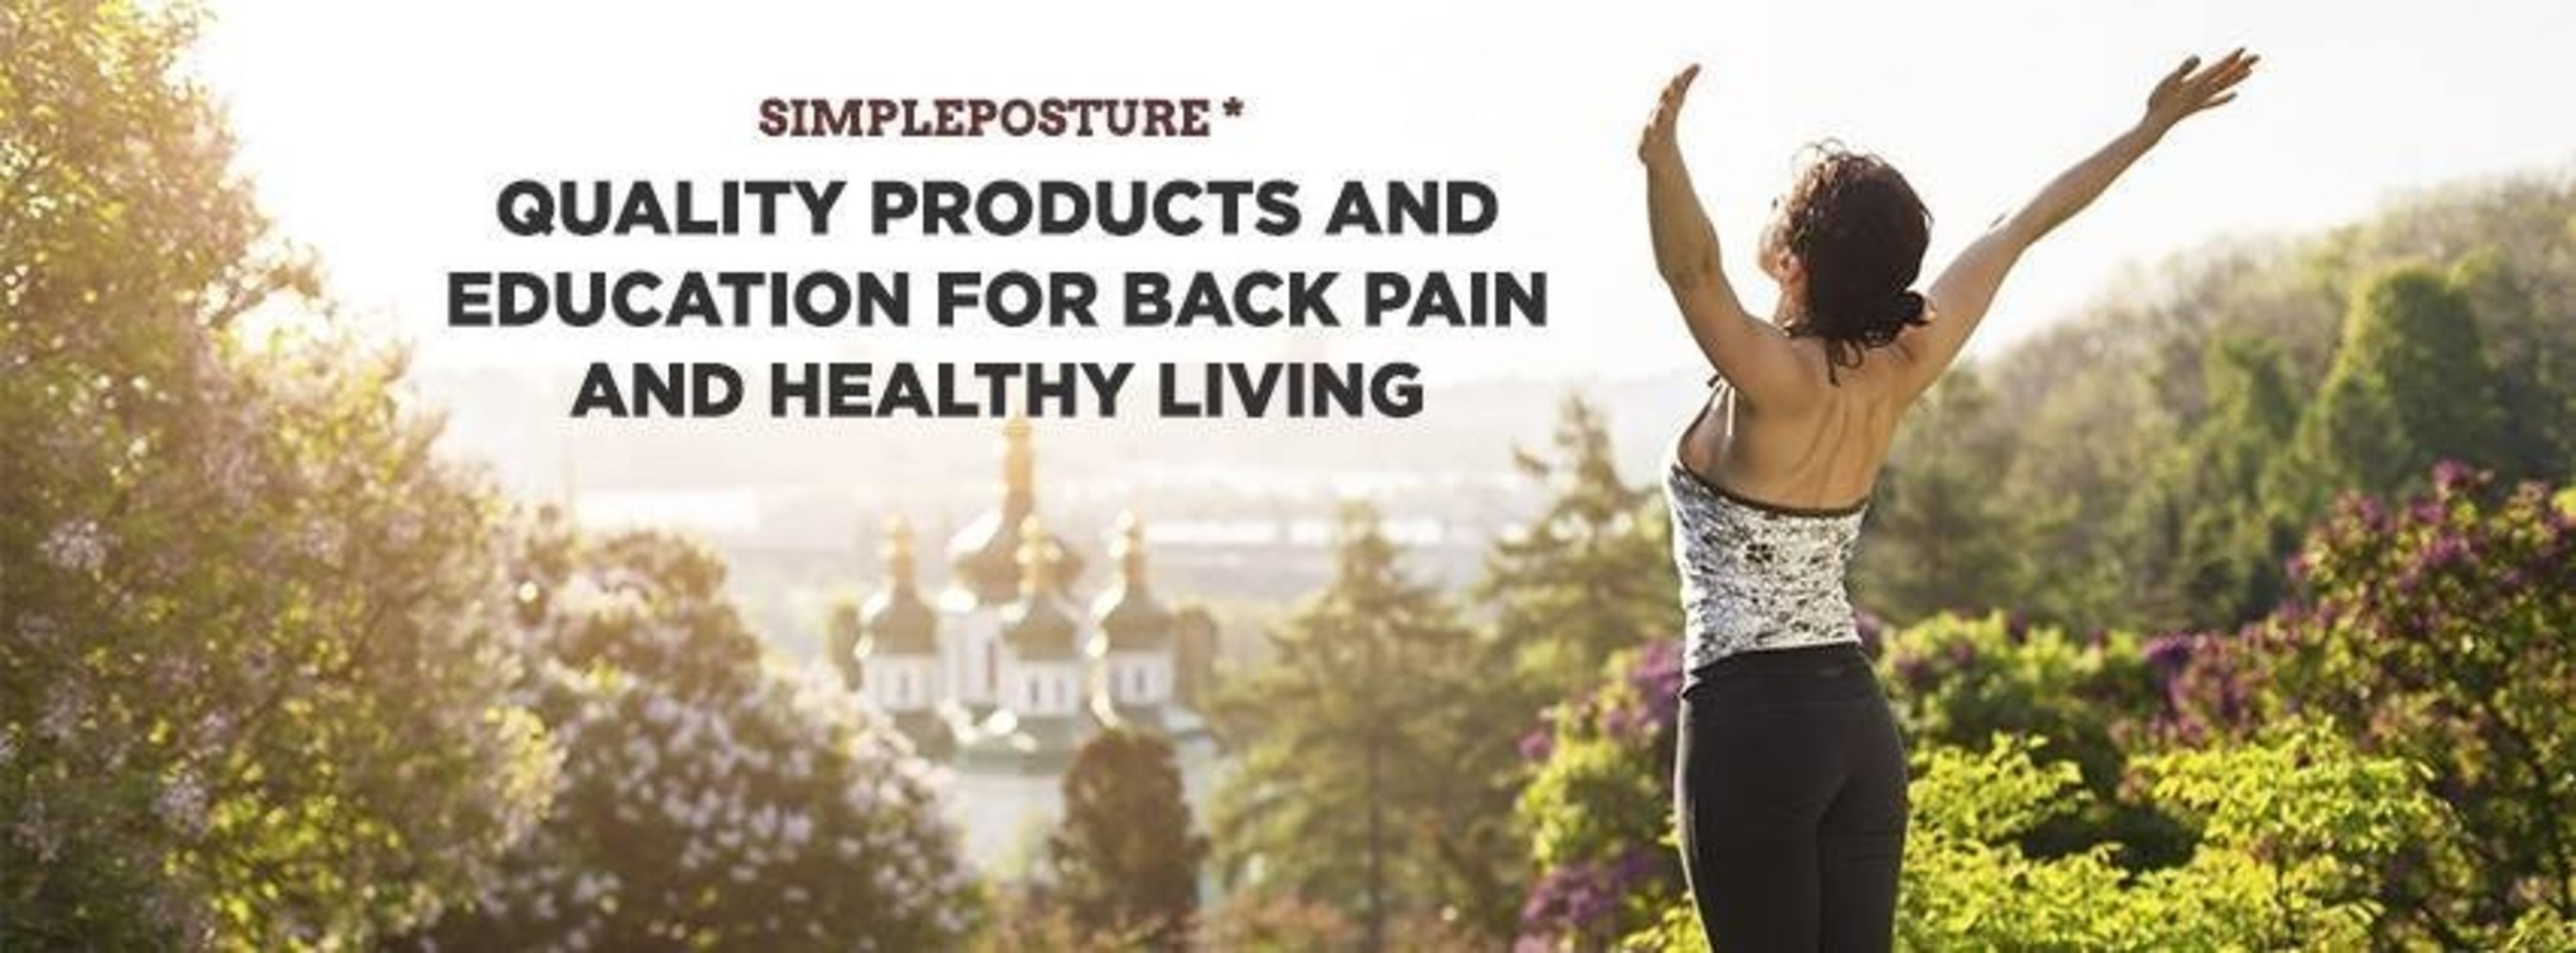 SimplePosture.com - The Online Store for Back Pain Relief